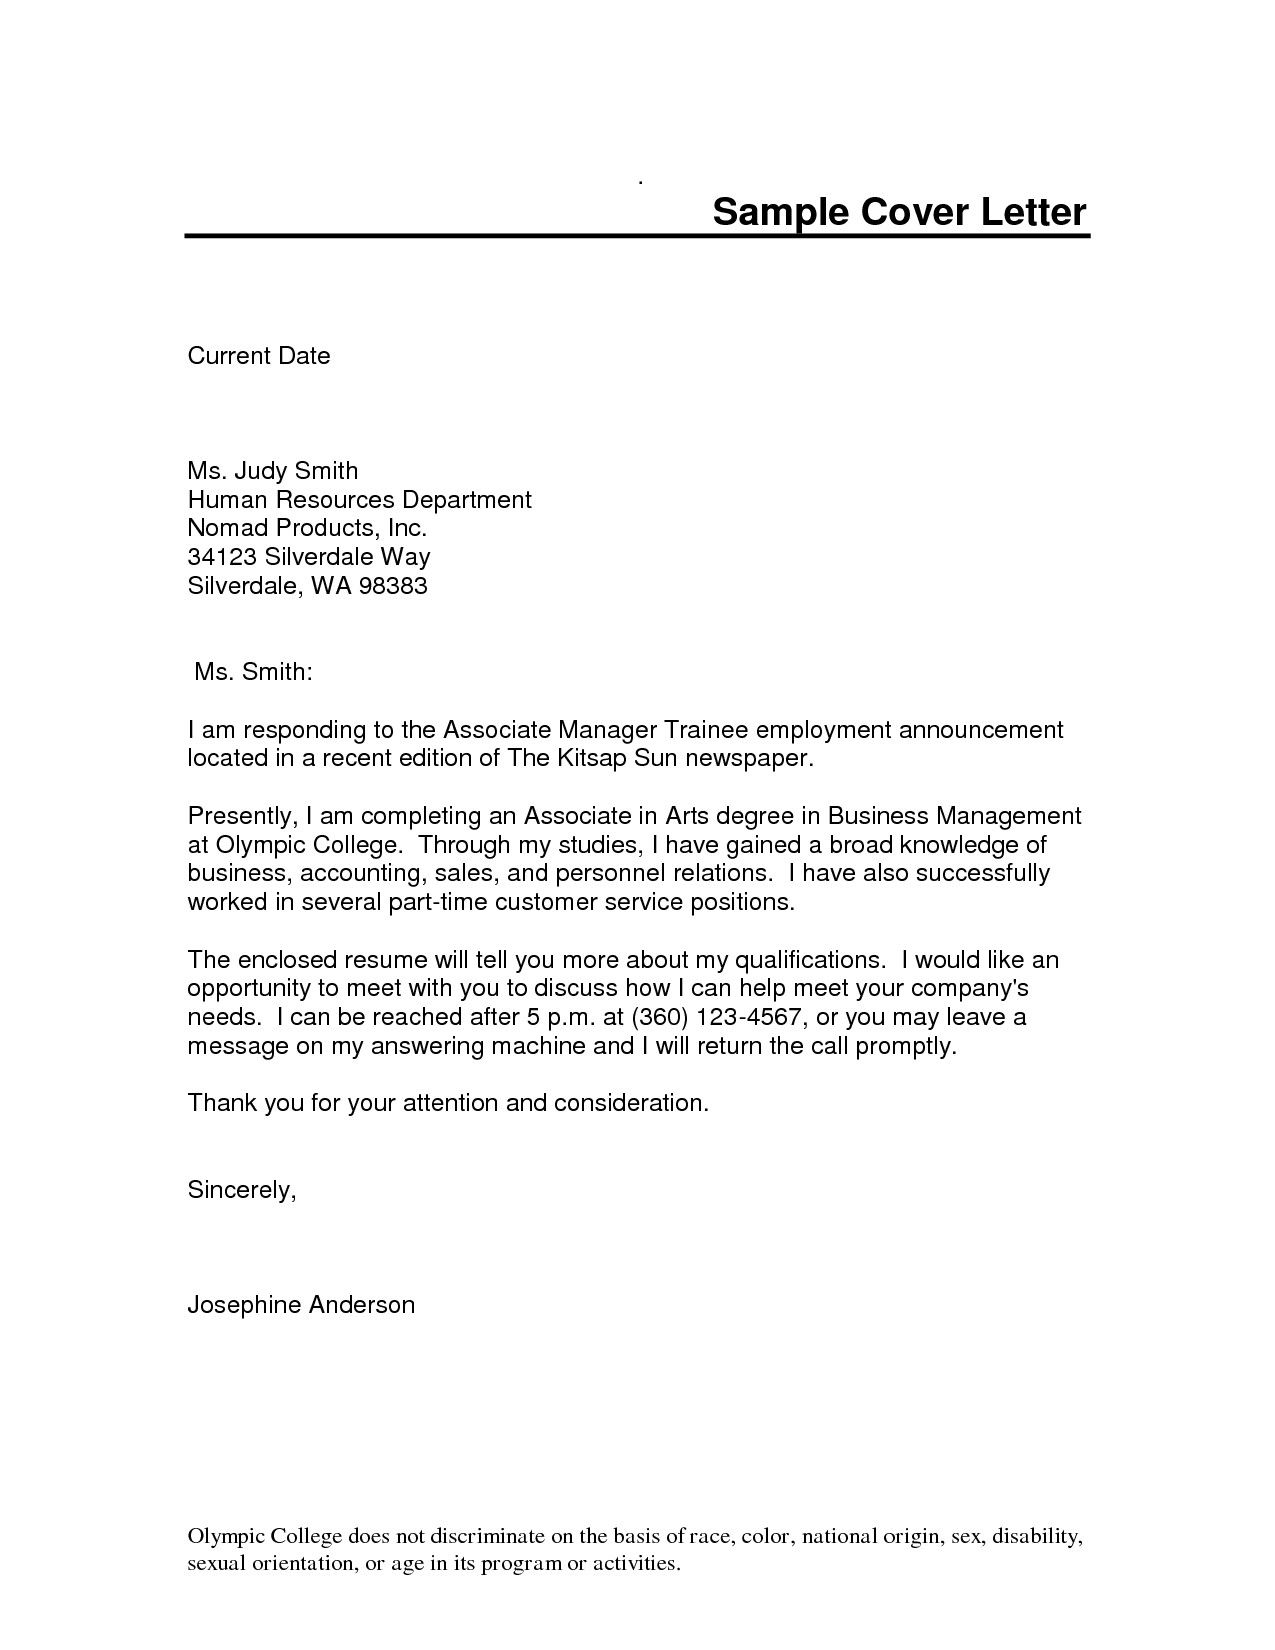 Free Cover Letter Template Microsoft Word Whats Cover